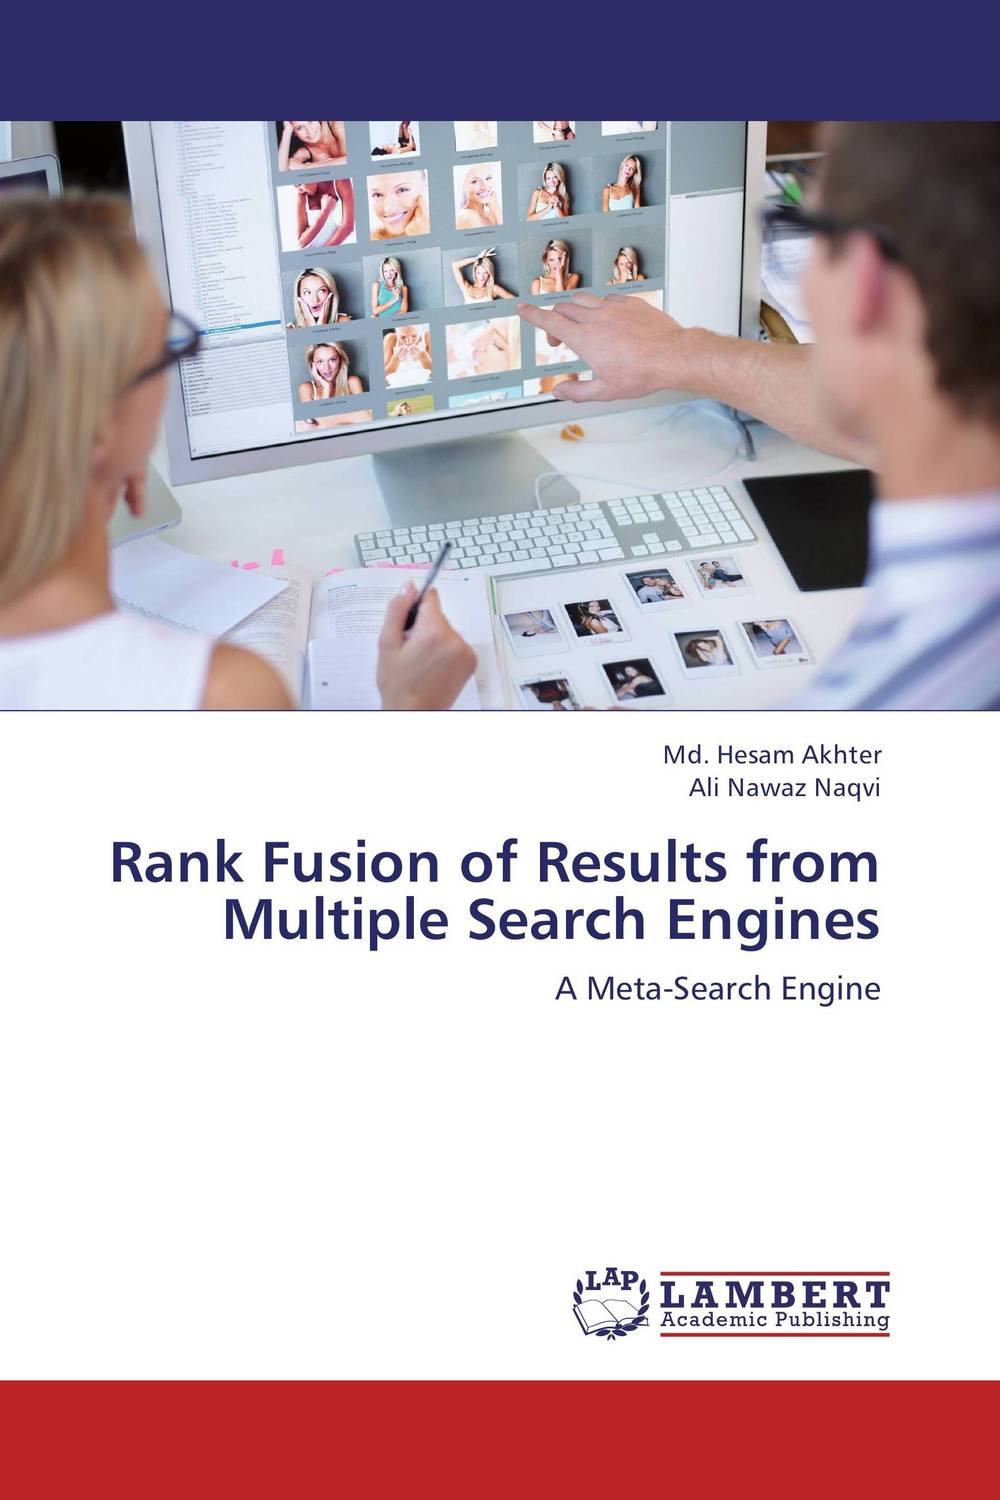 Rank Fusion of Results from Multiple Search Engines md hesam akhter and ali nawaz naqvi rank fusion of results from multiple search engines